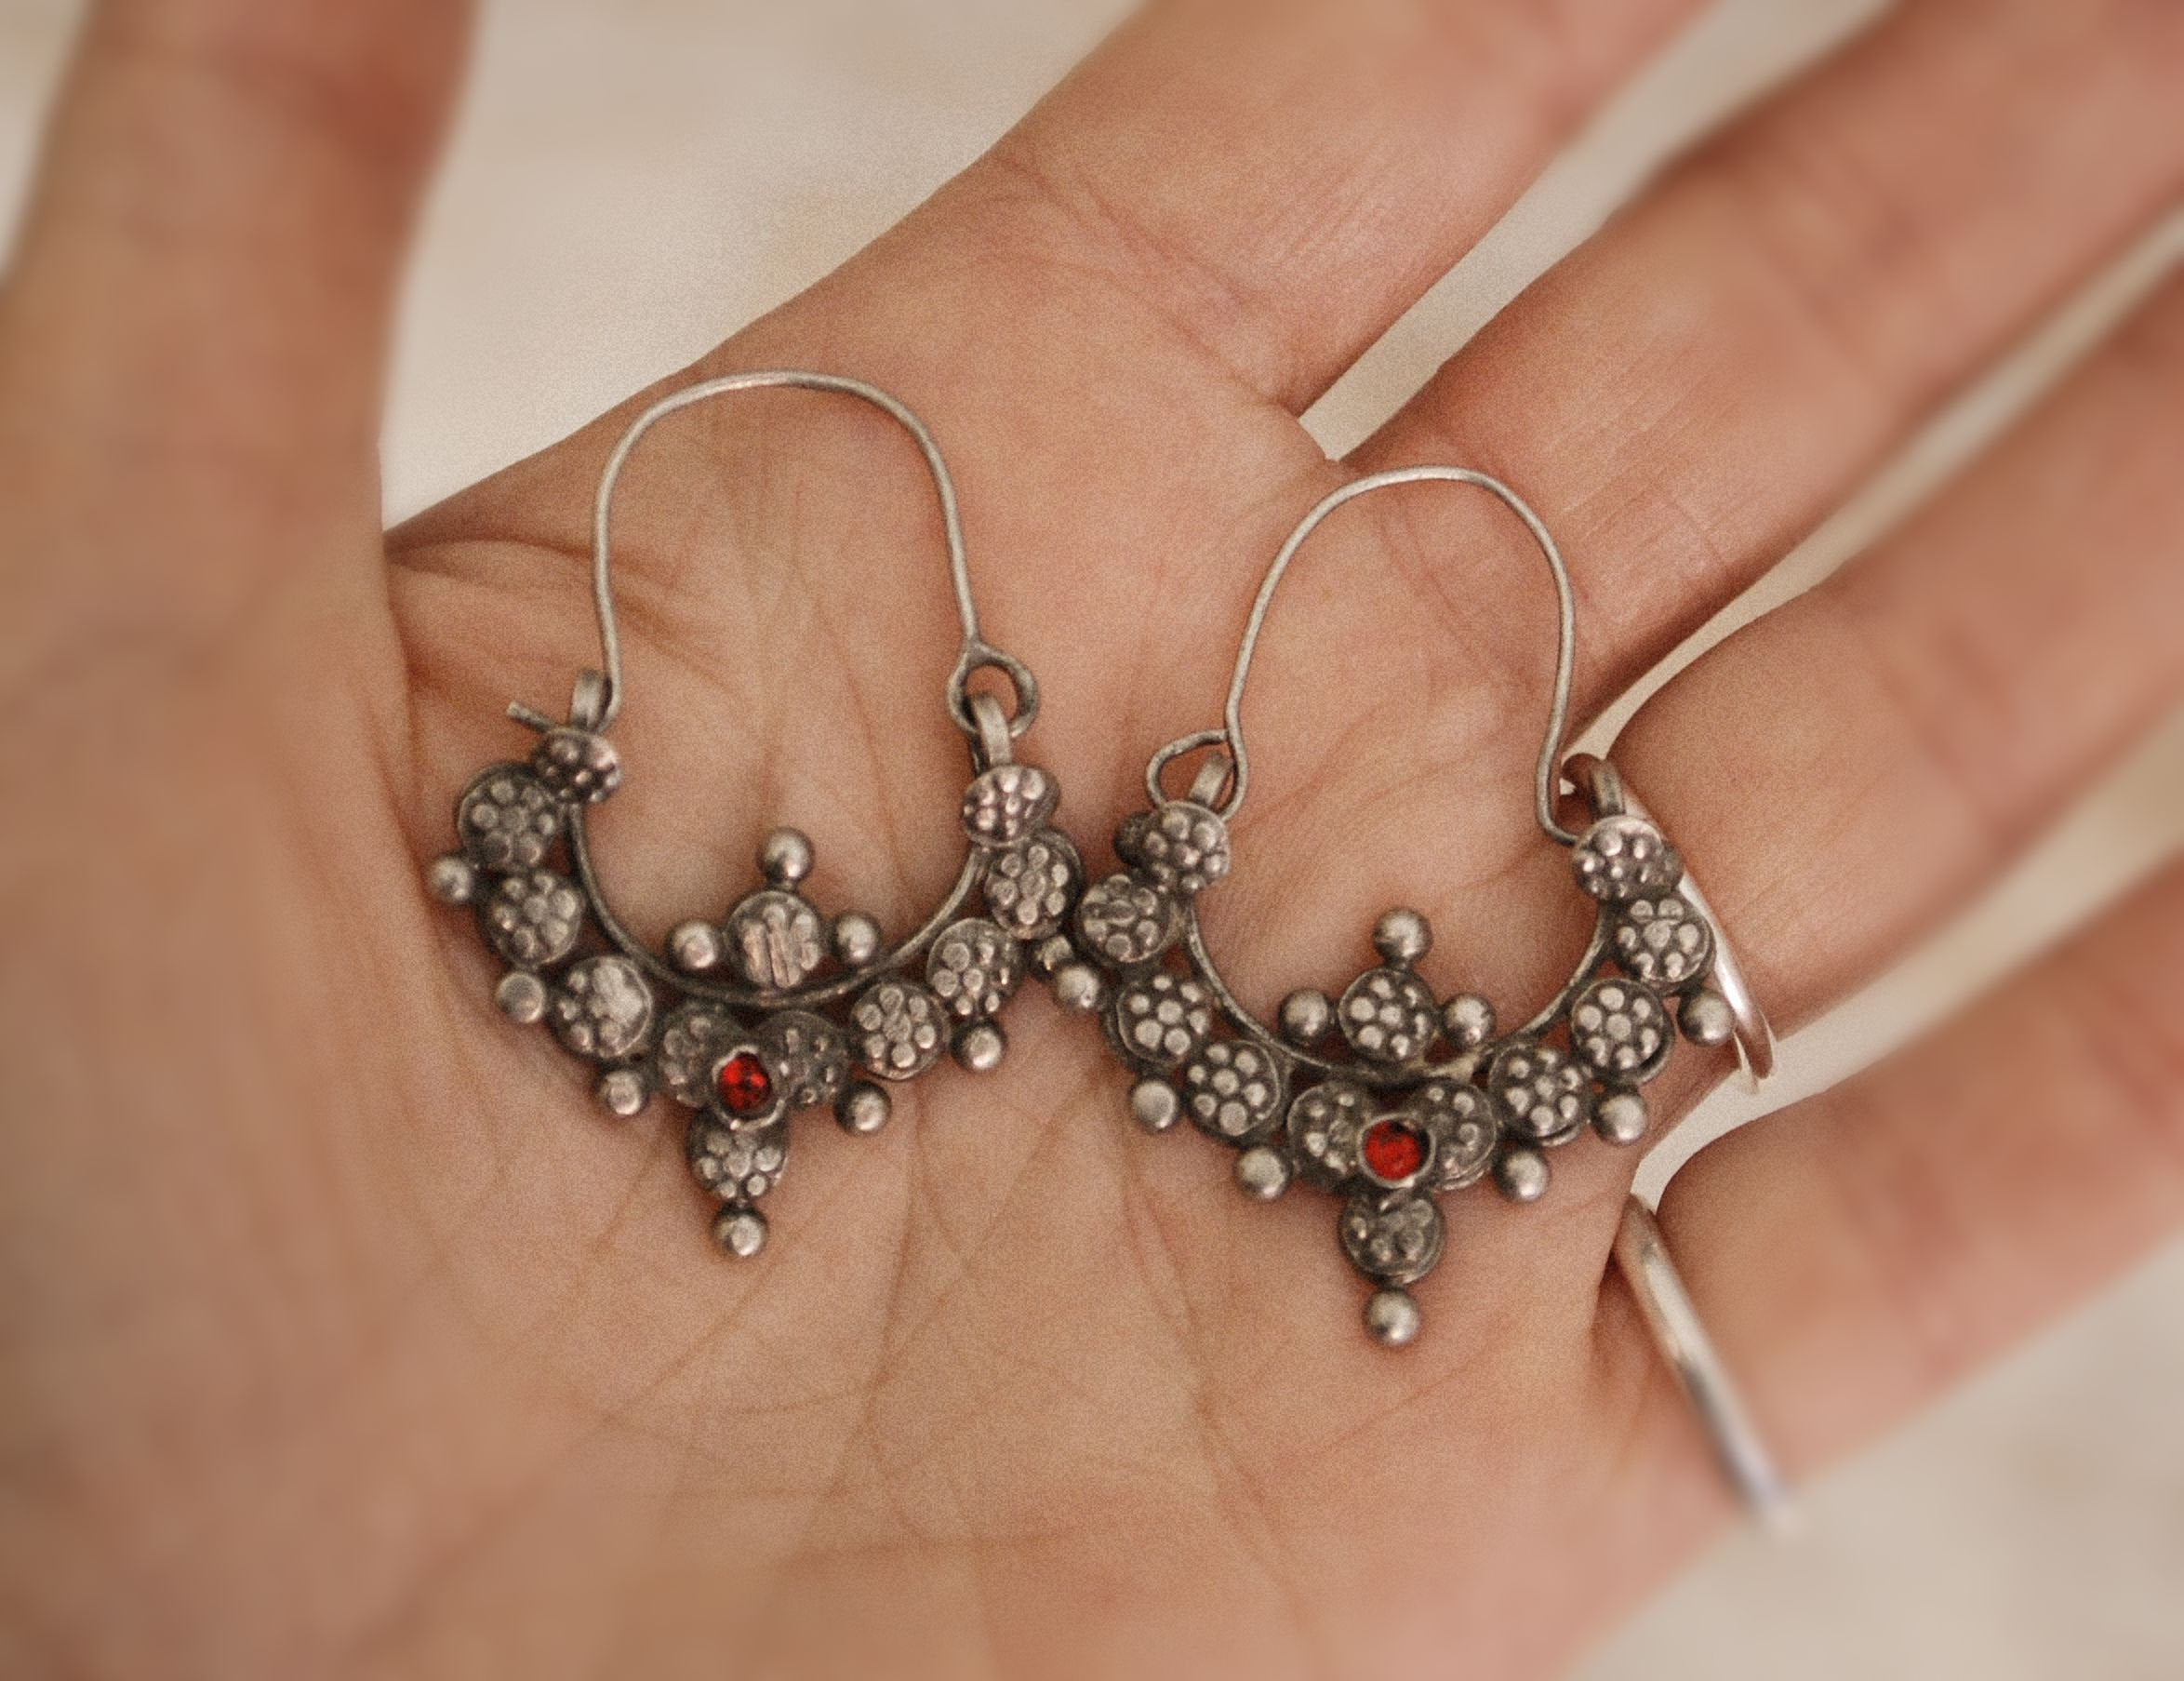 Antique Afghani Earrings - Tribal Hoop Earrings - Afghani Hoop Earrings - Ethnic Hoop Earrings - Afghani Jewelry - Tribal Earrings